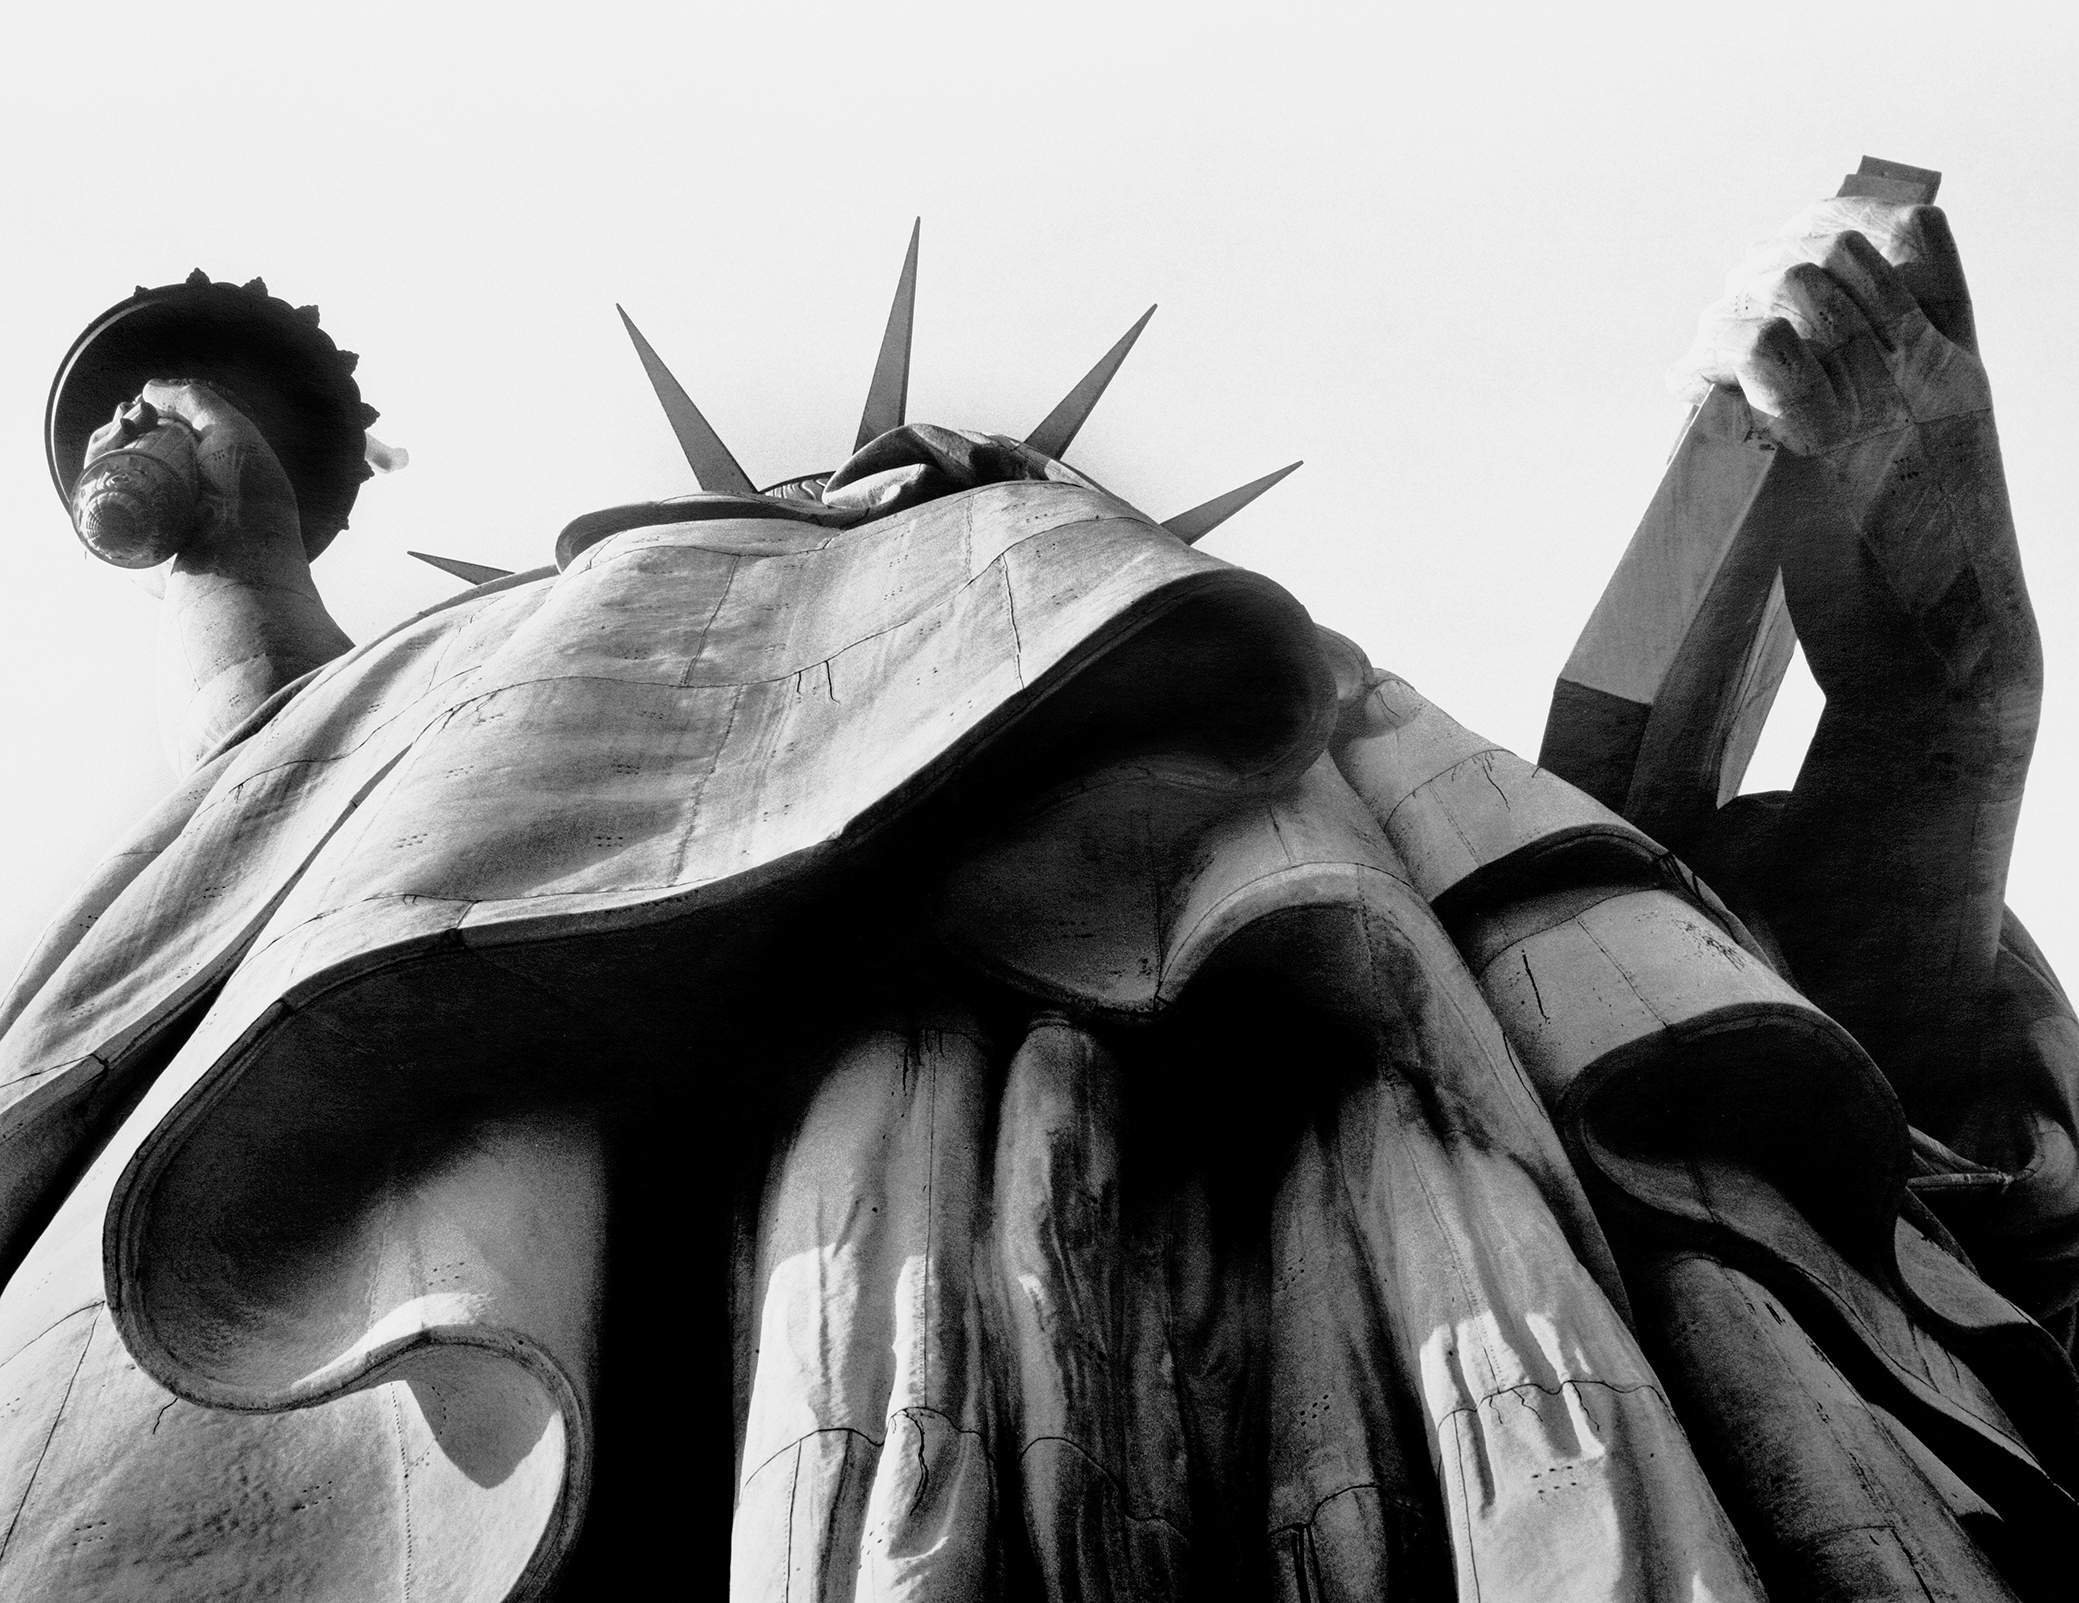 The mighty Statue of Liberty from an empowering angle.